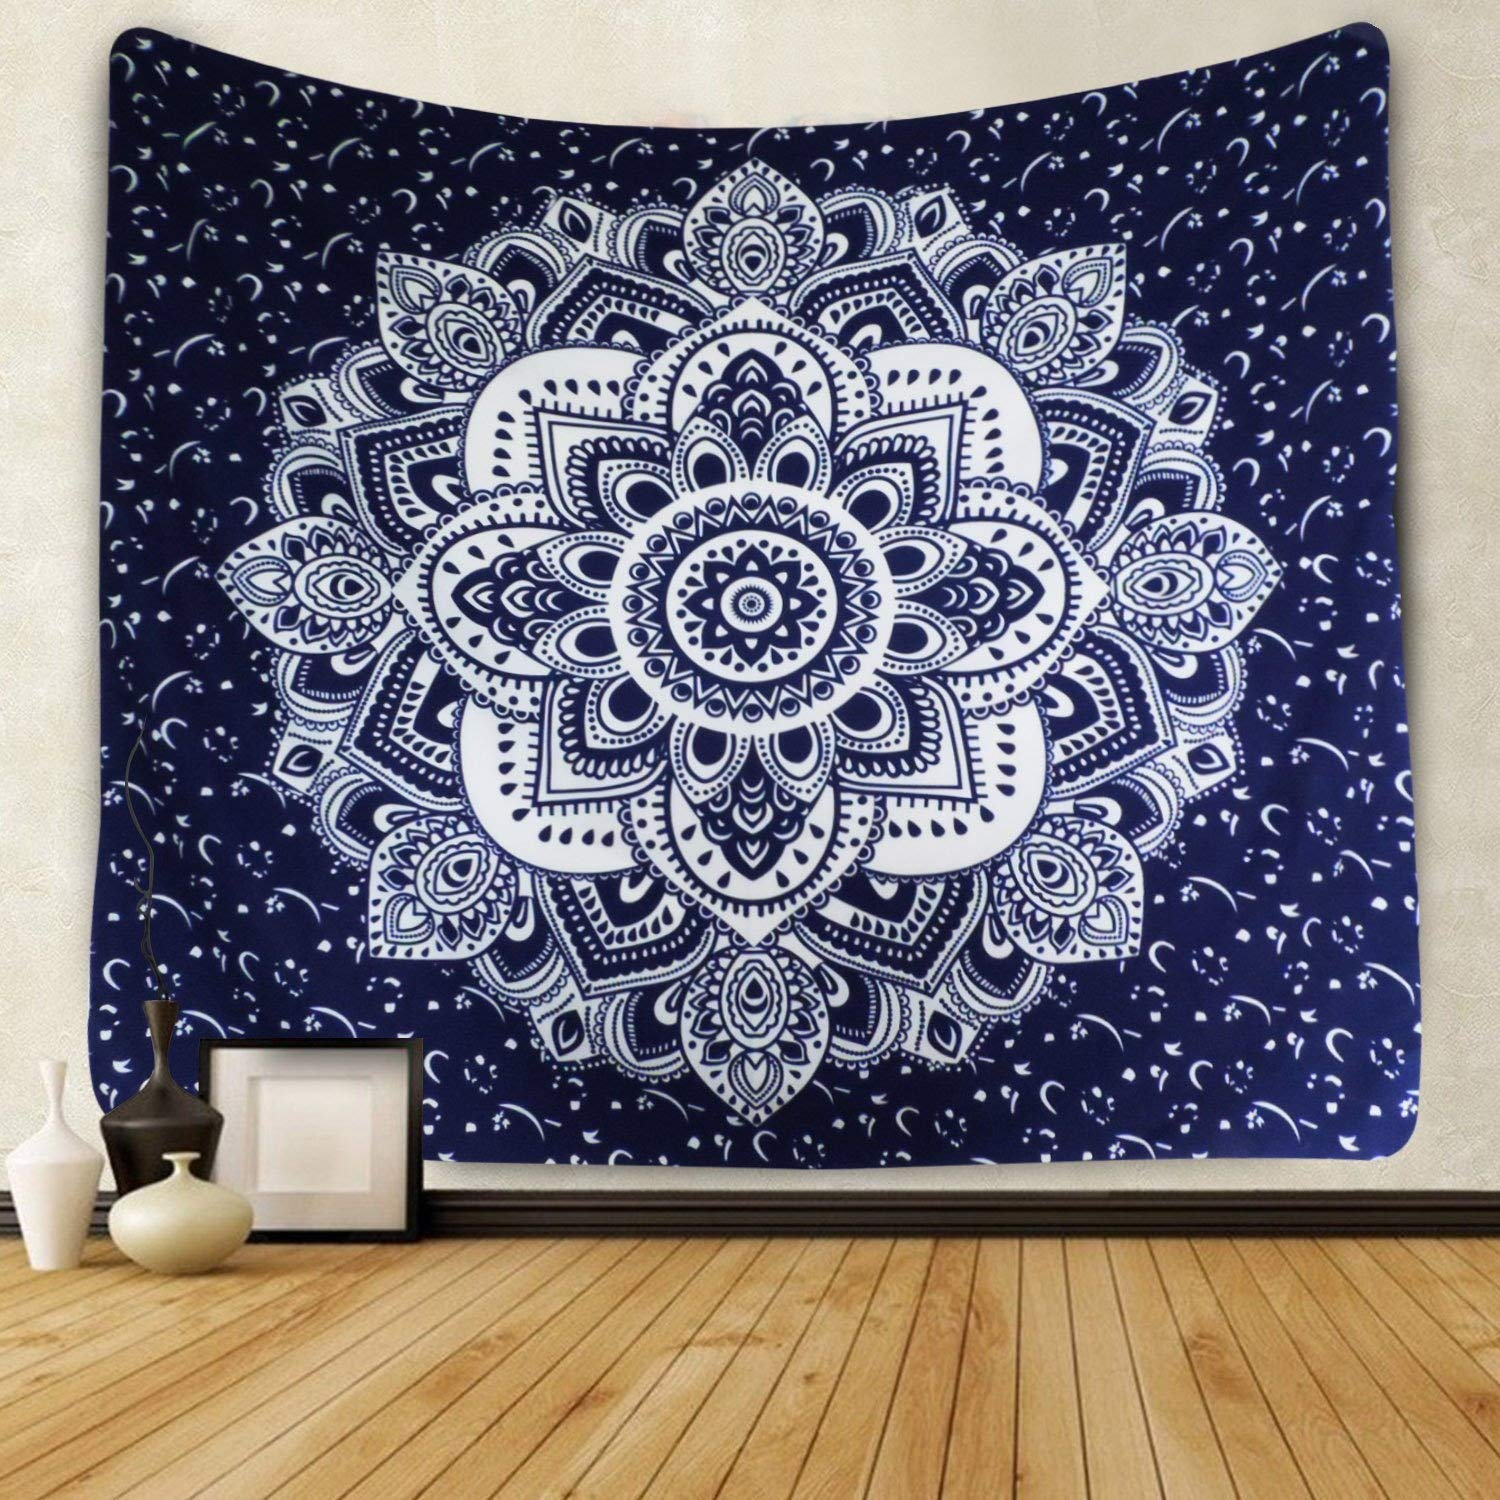 BLEUM CADE Mandala Tapestry Wall Hanging Indian Bohemian Hippie Psychedelic Tapestry Wall Decor for Living Room Bedroom